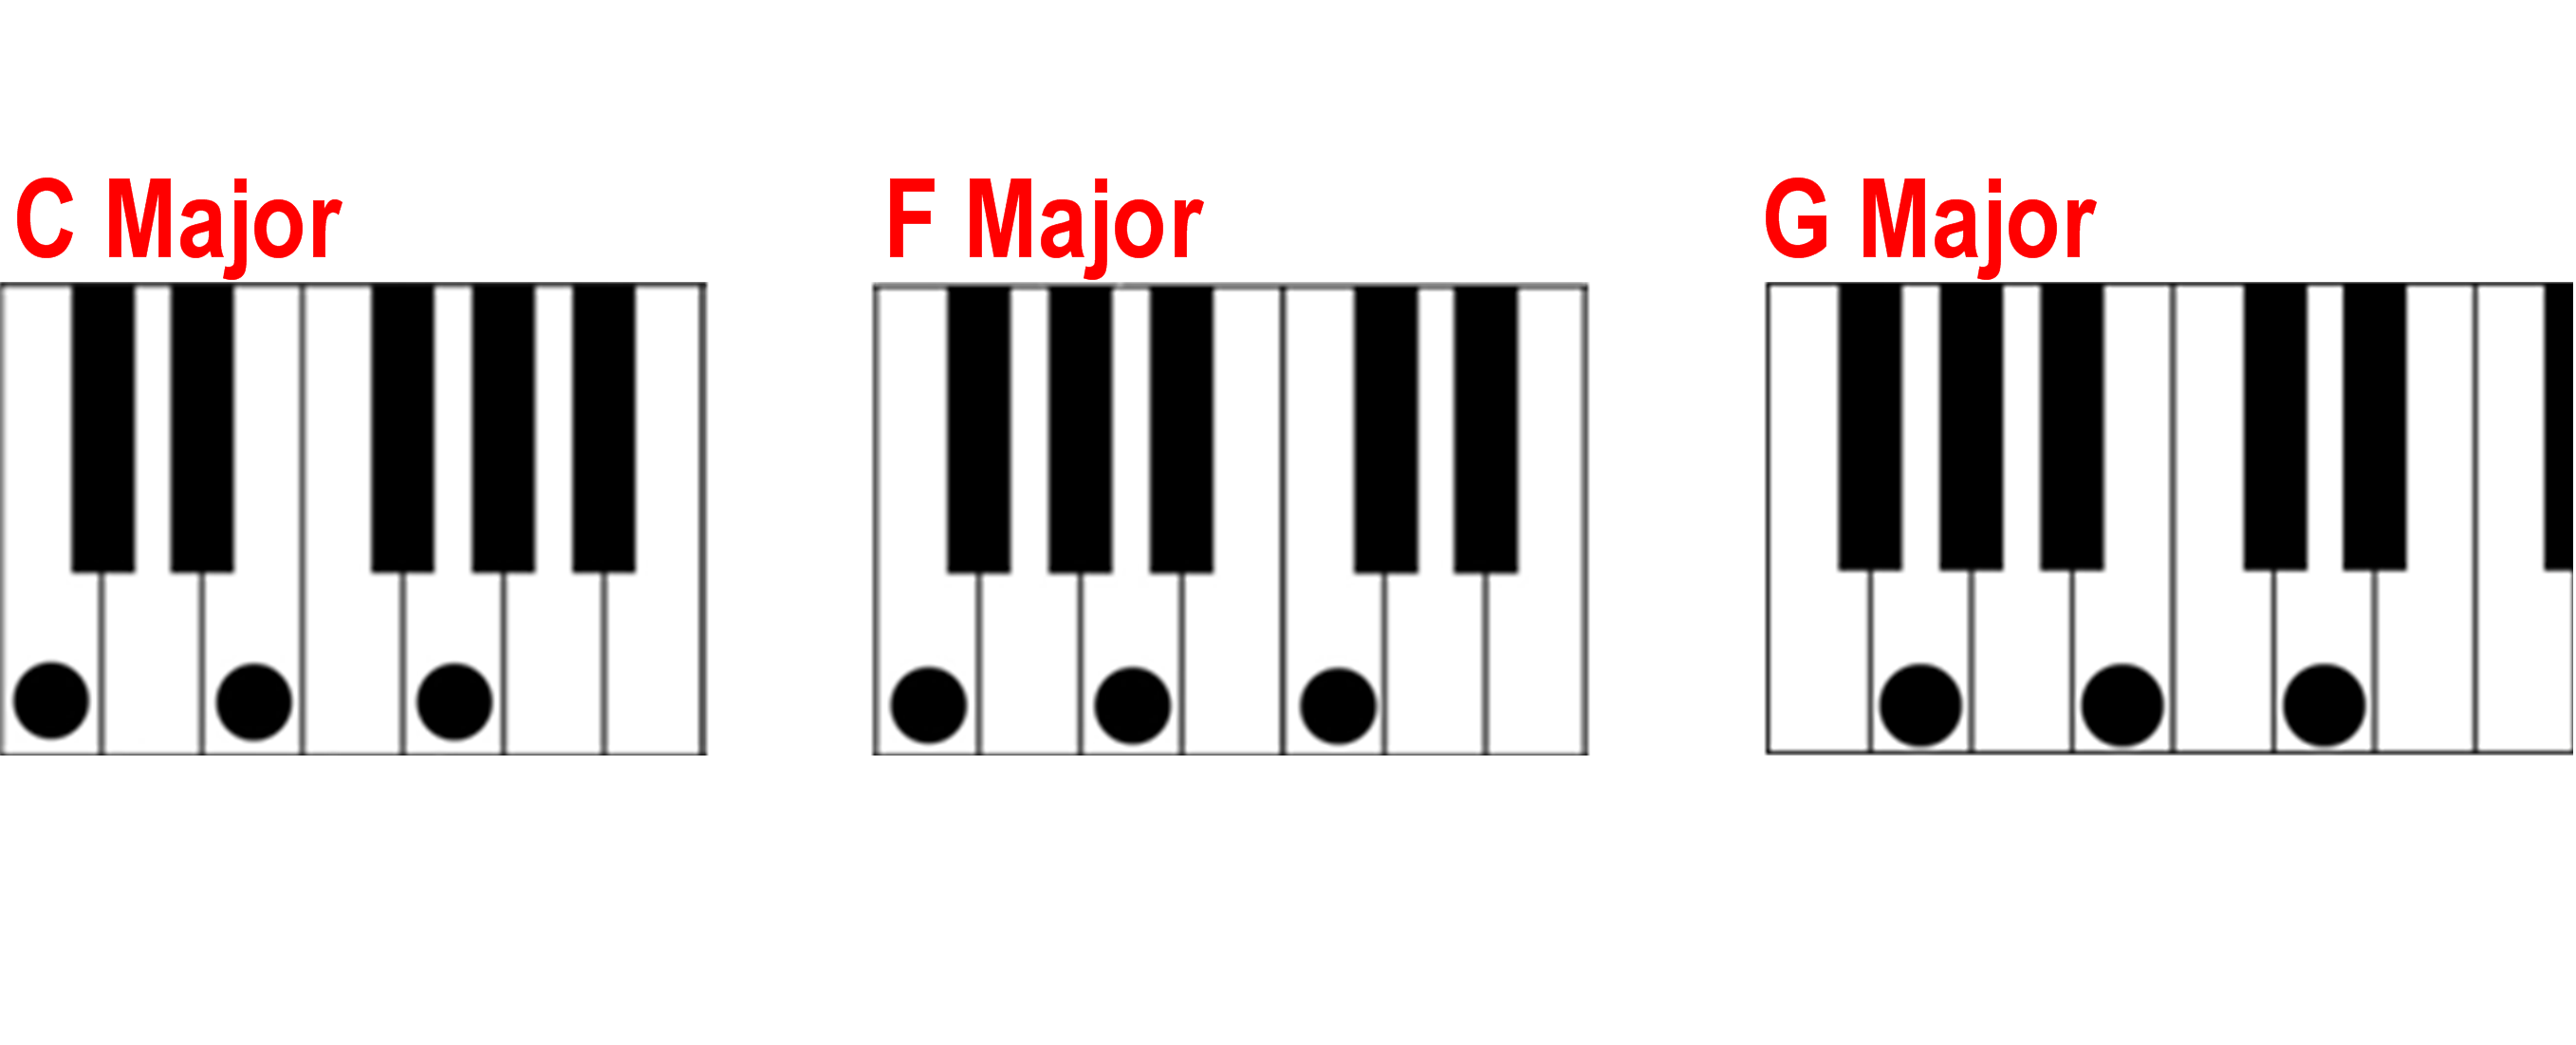 Finding a major chord on the piano c f and g major piano chords hexwebz Image collections